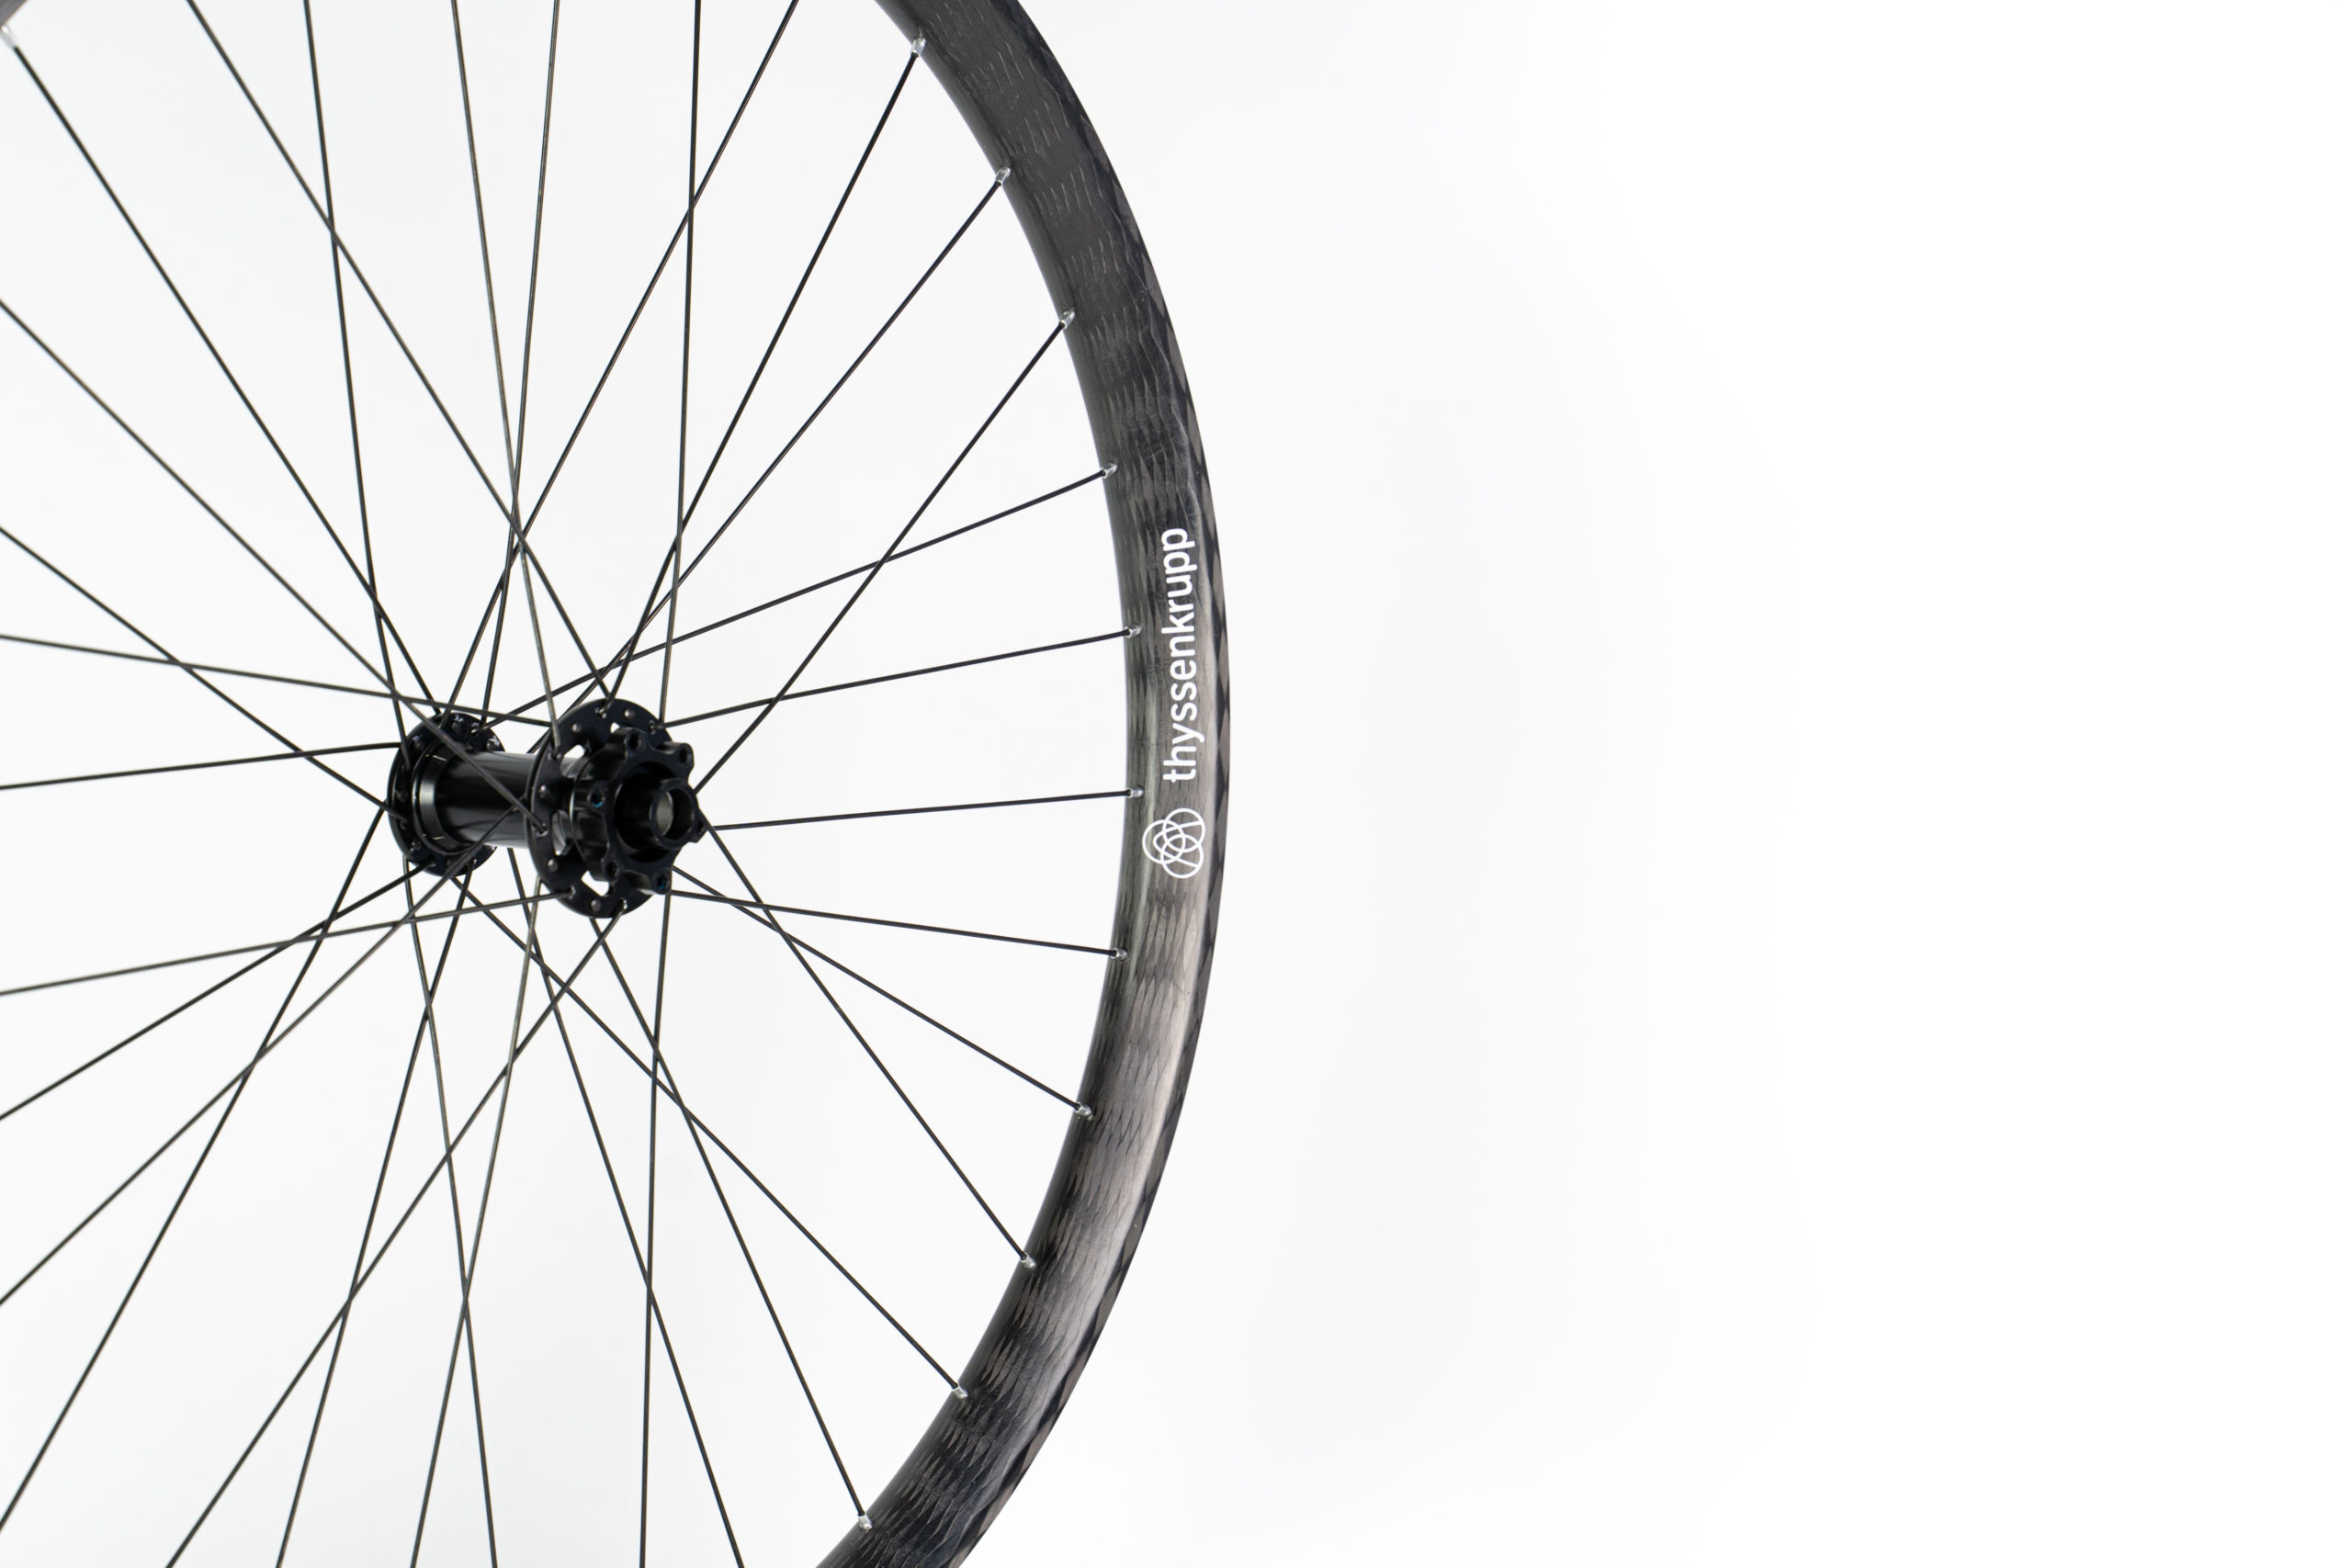 Braided carbon wheels for bikes